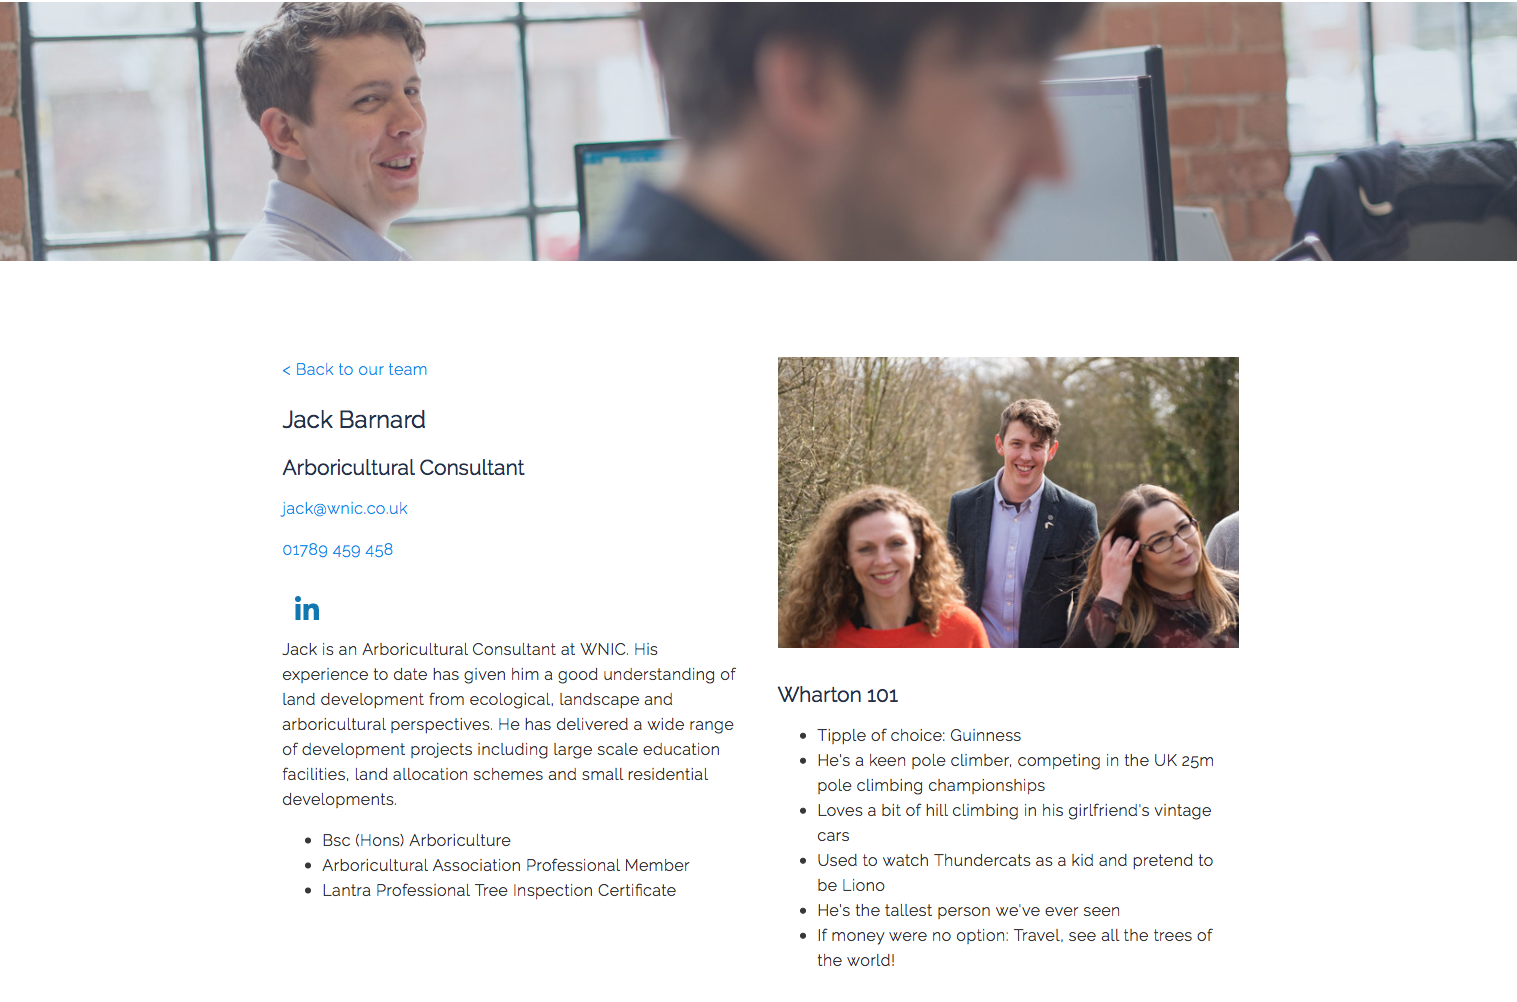 Jack Barnard at Wharton Natural Infrastructure Consultants. Each team member has their own page, showing professional information, personal info and my photos